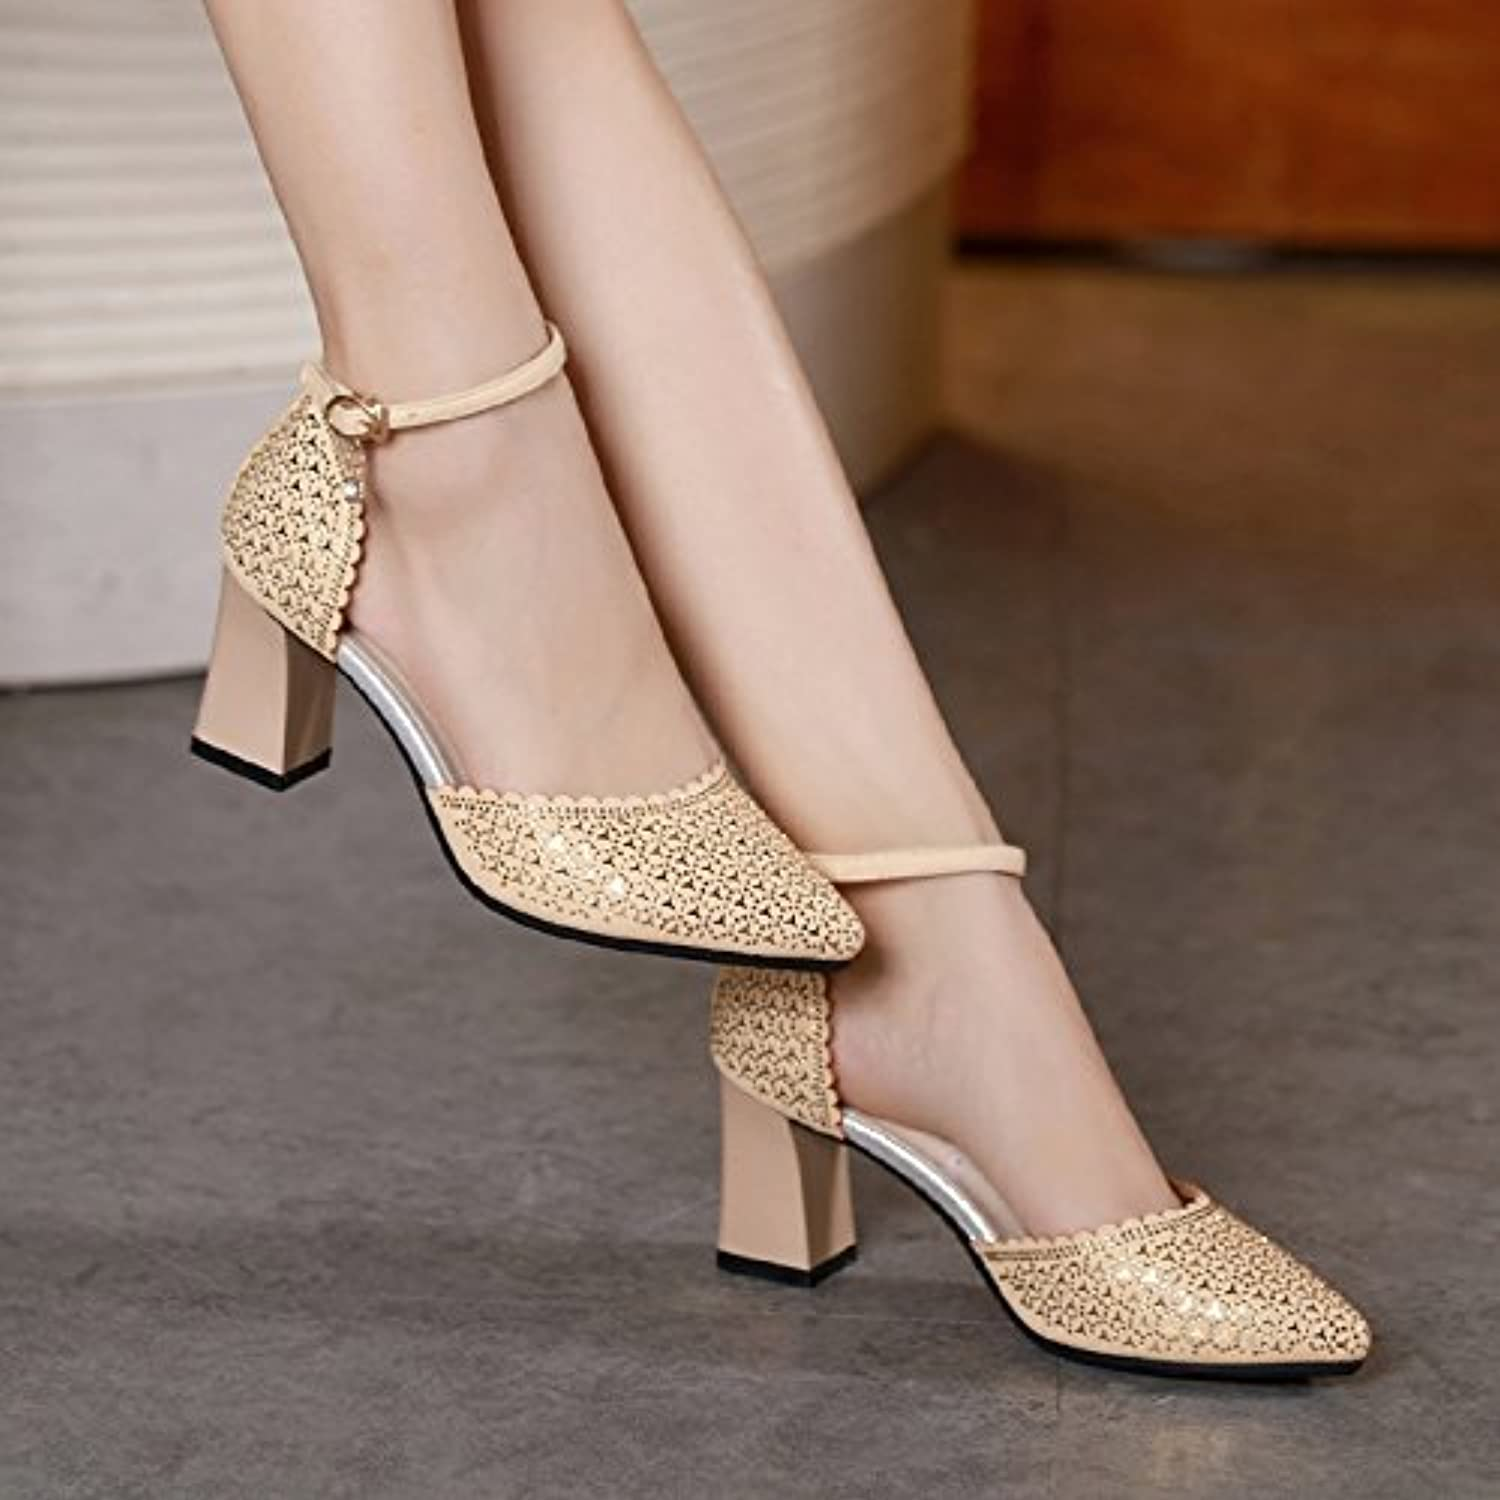 998385afec2c SHOESHAOGE nhta-20987 Baotou Sandals Parent Female Light-Tipped Women S  Shoes Summer 20978 A Word With Rhinestones Coarse Heel Black Heels.